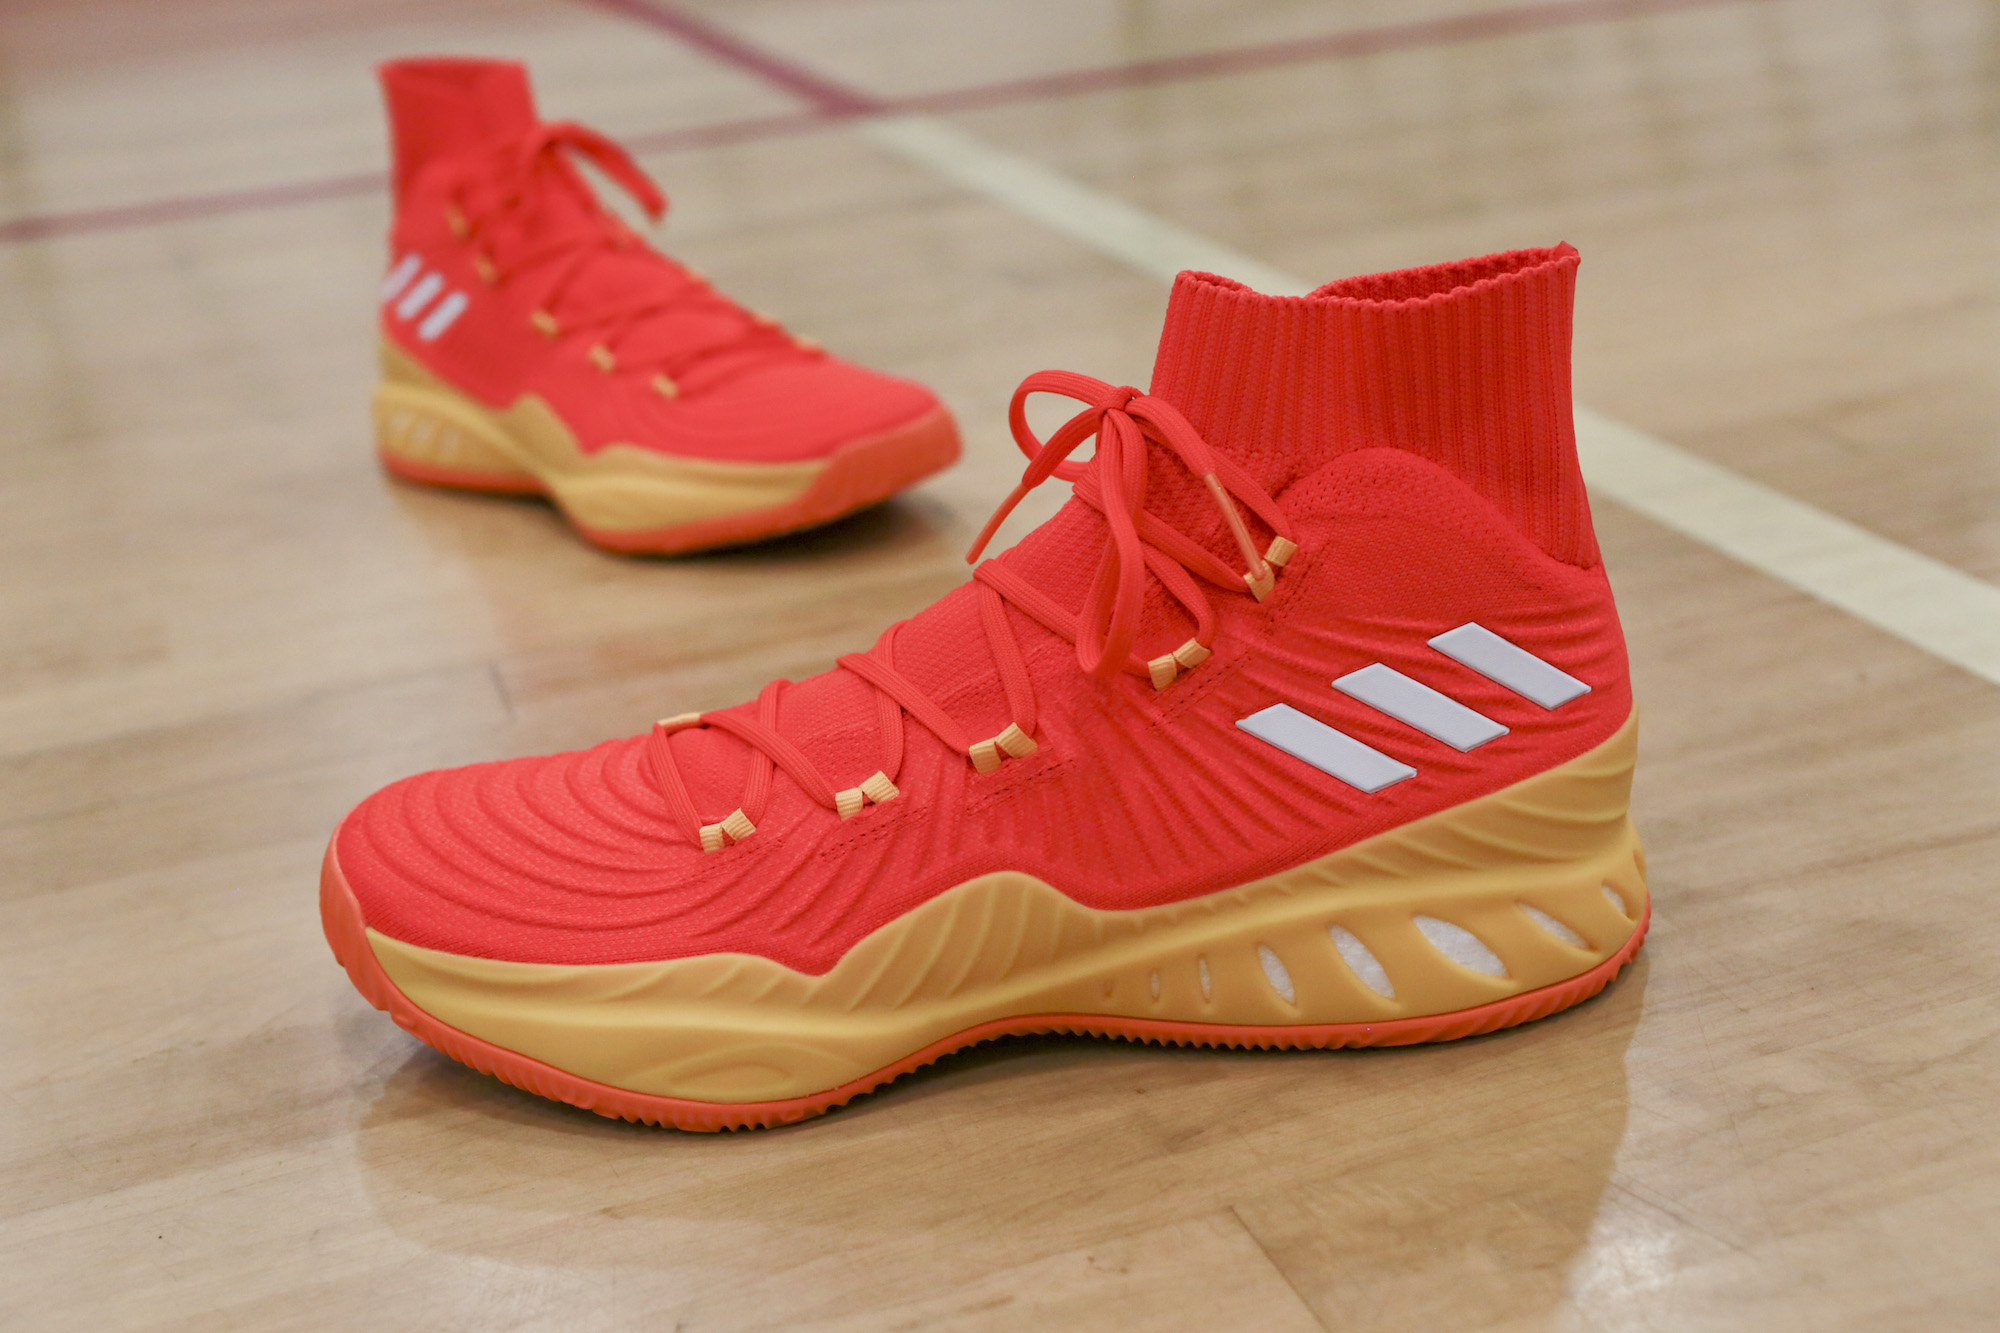 adidas Crazy Explosive 17 Candace Parker All-Star PE 2